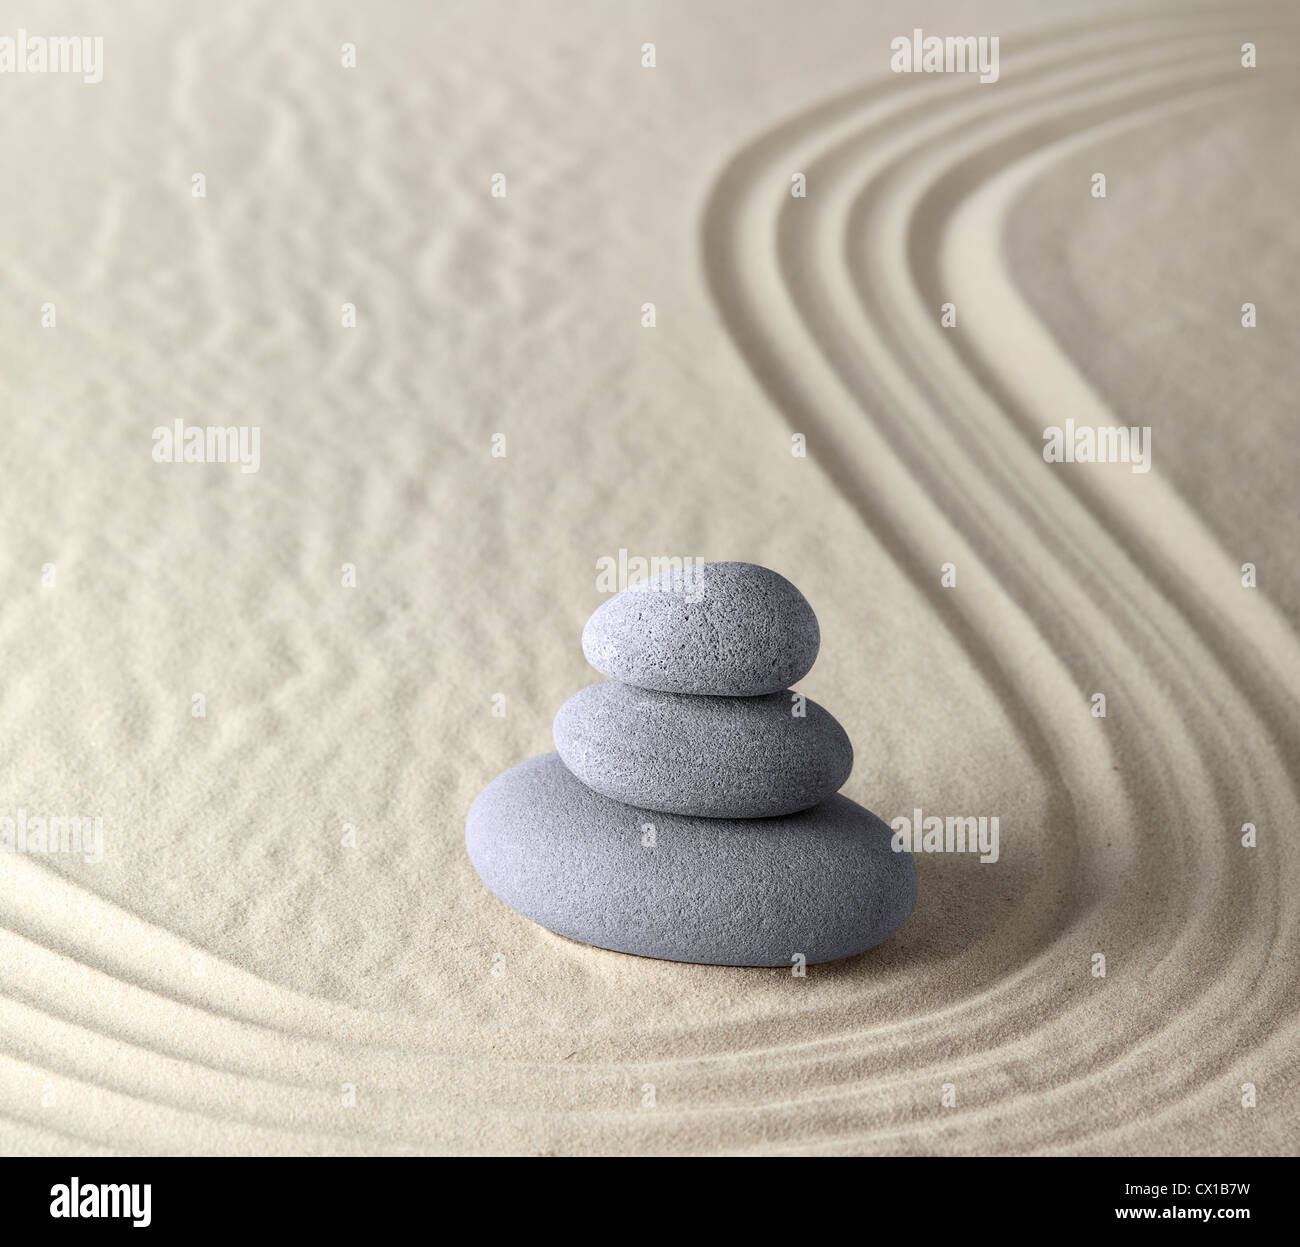 Purity and serenity balance rocks and sand in japanese zen garden purity and serenity balance rocks and sand in japanese zen garden meditation stones for concentration and relaxation workwithnaturefo